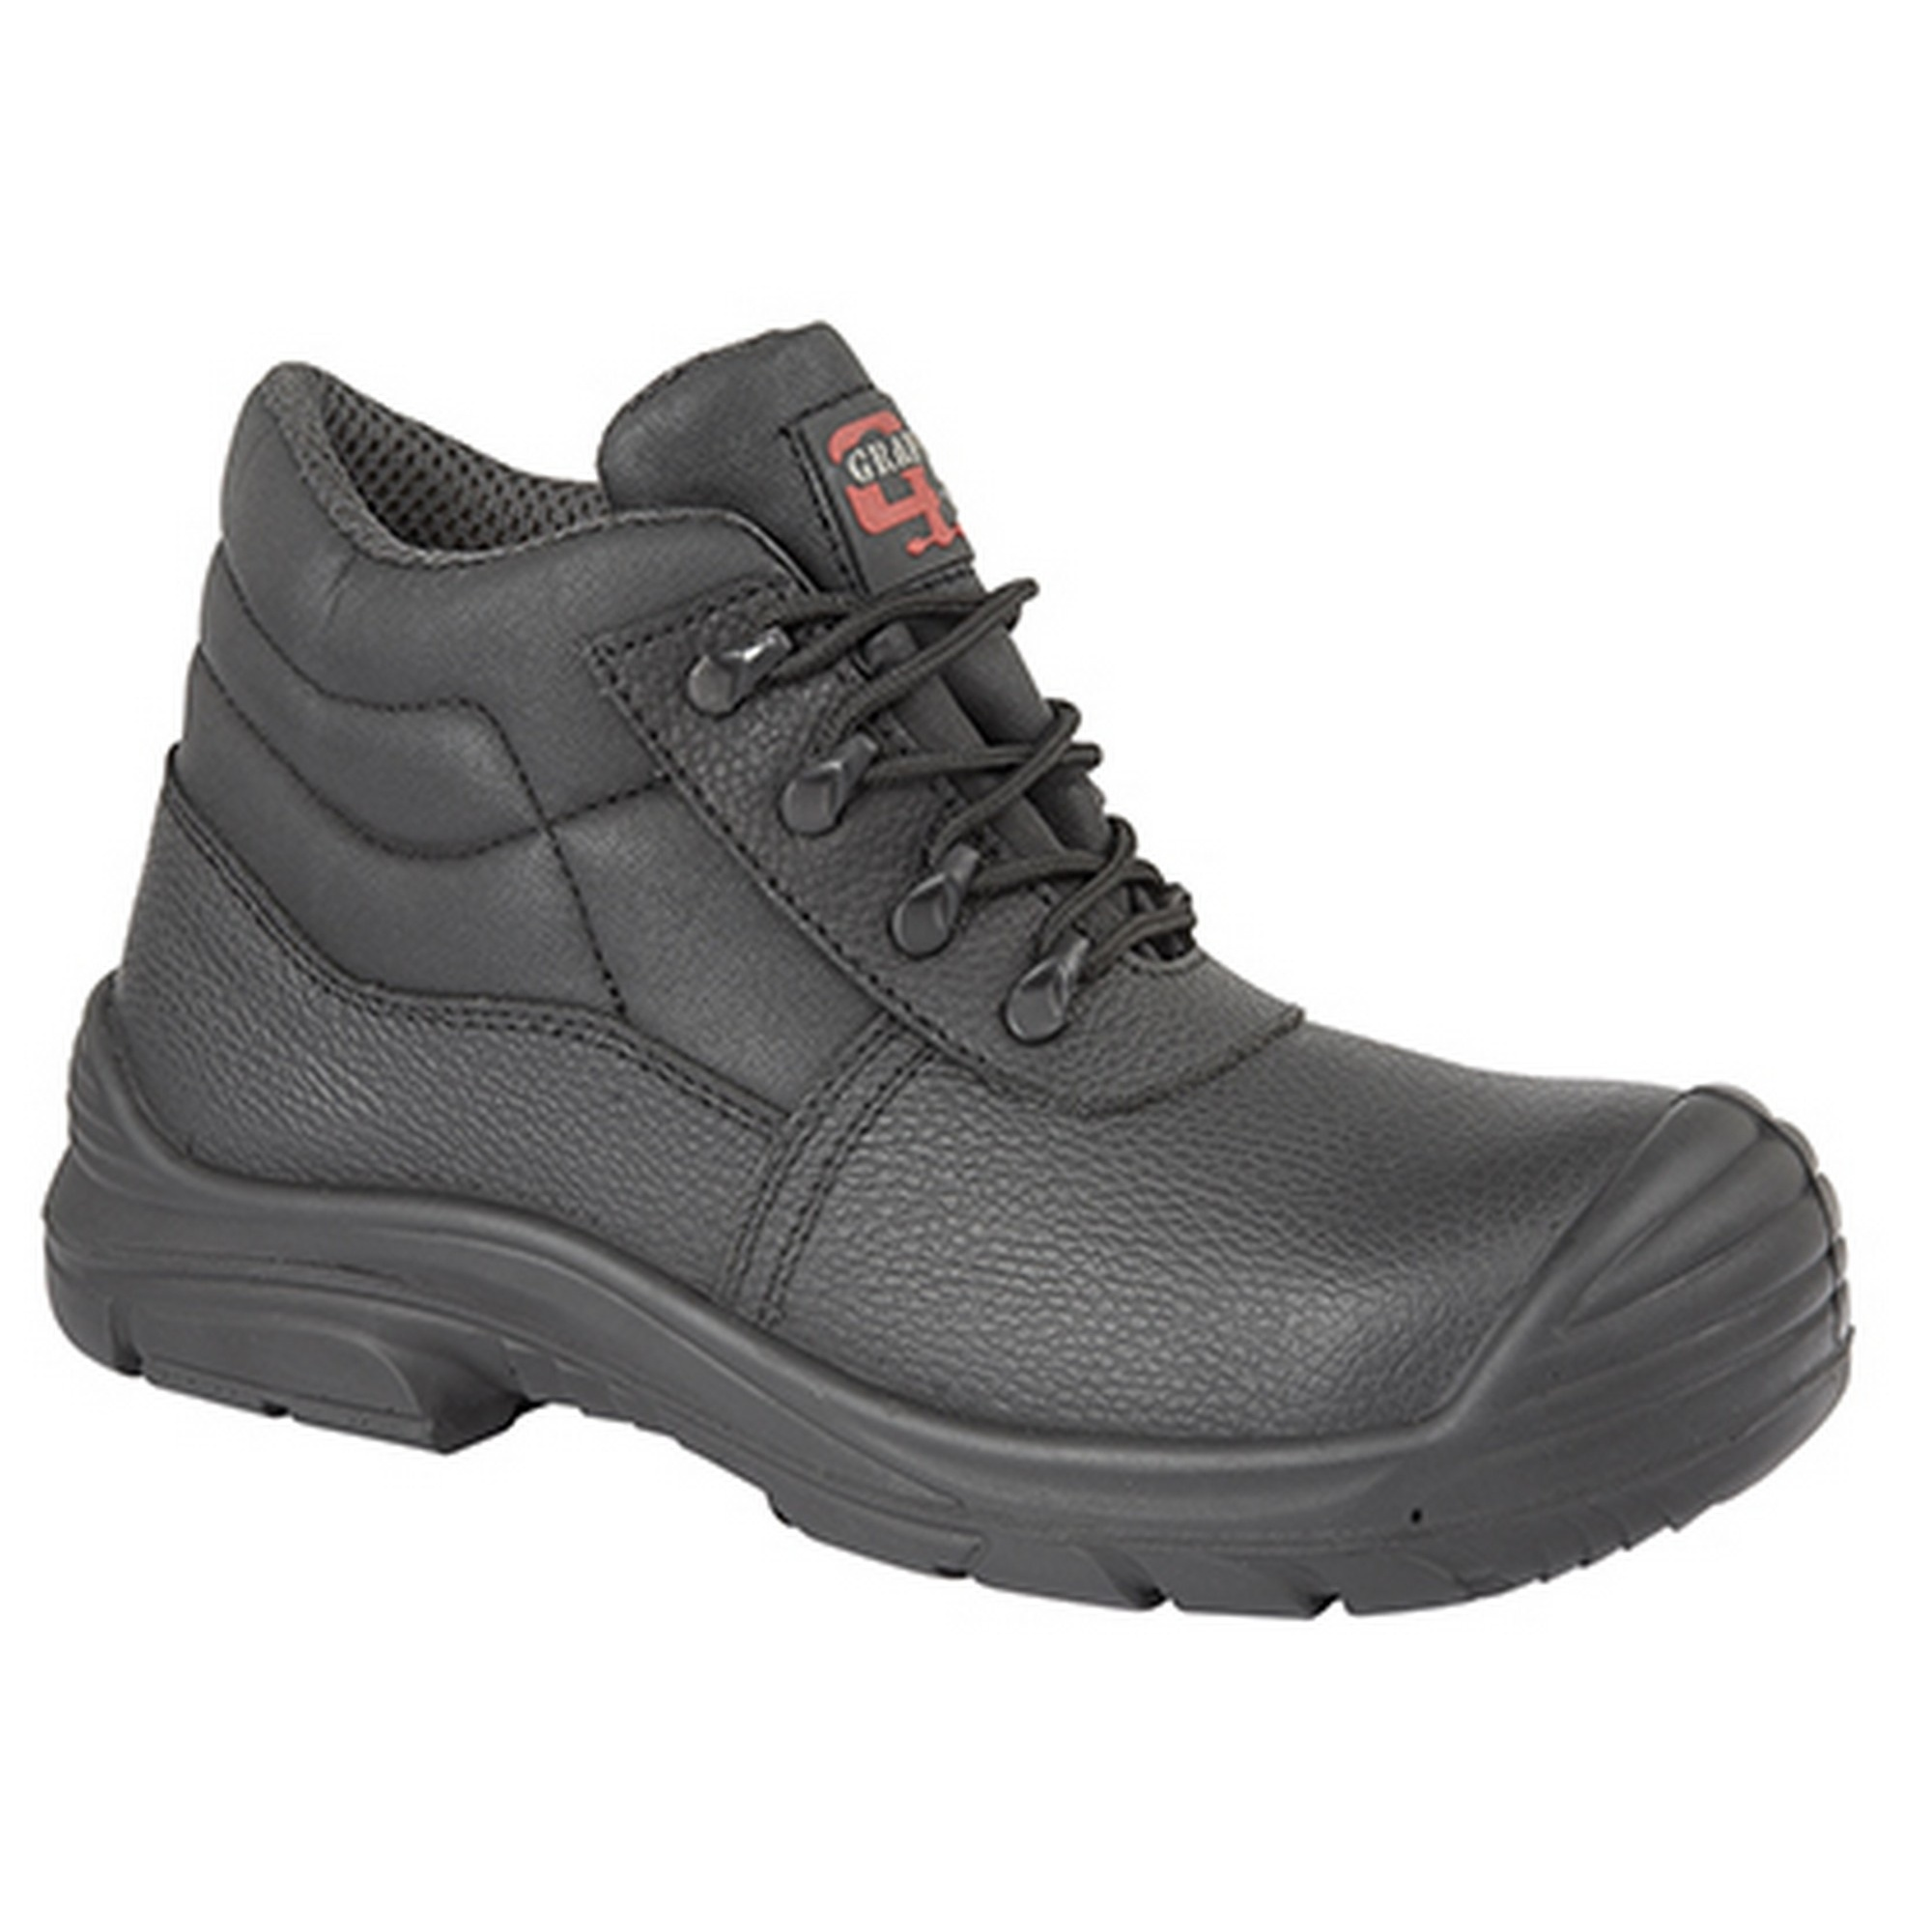 Wide Fitting Shoes Mens Snow Boots